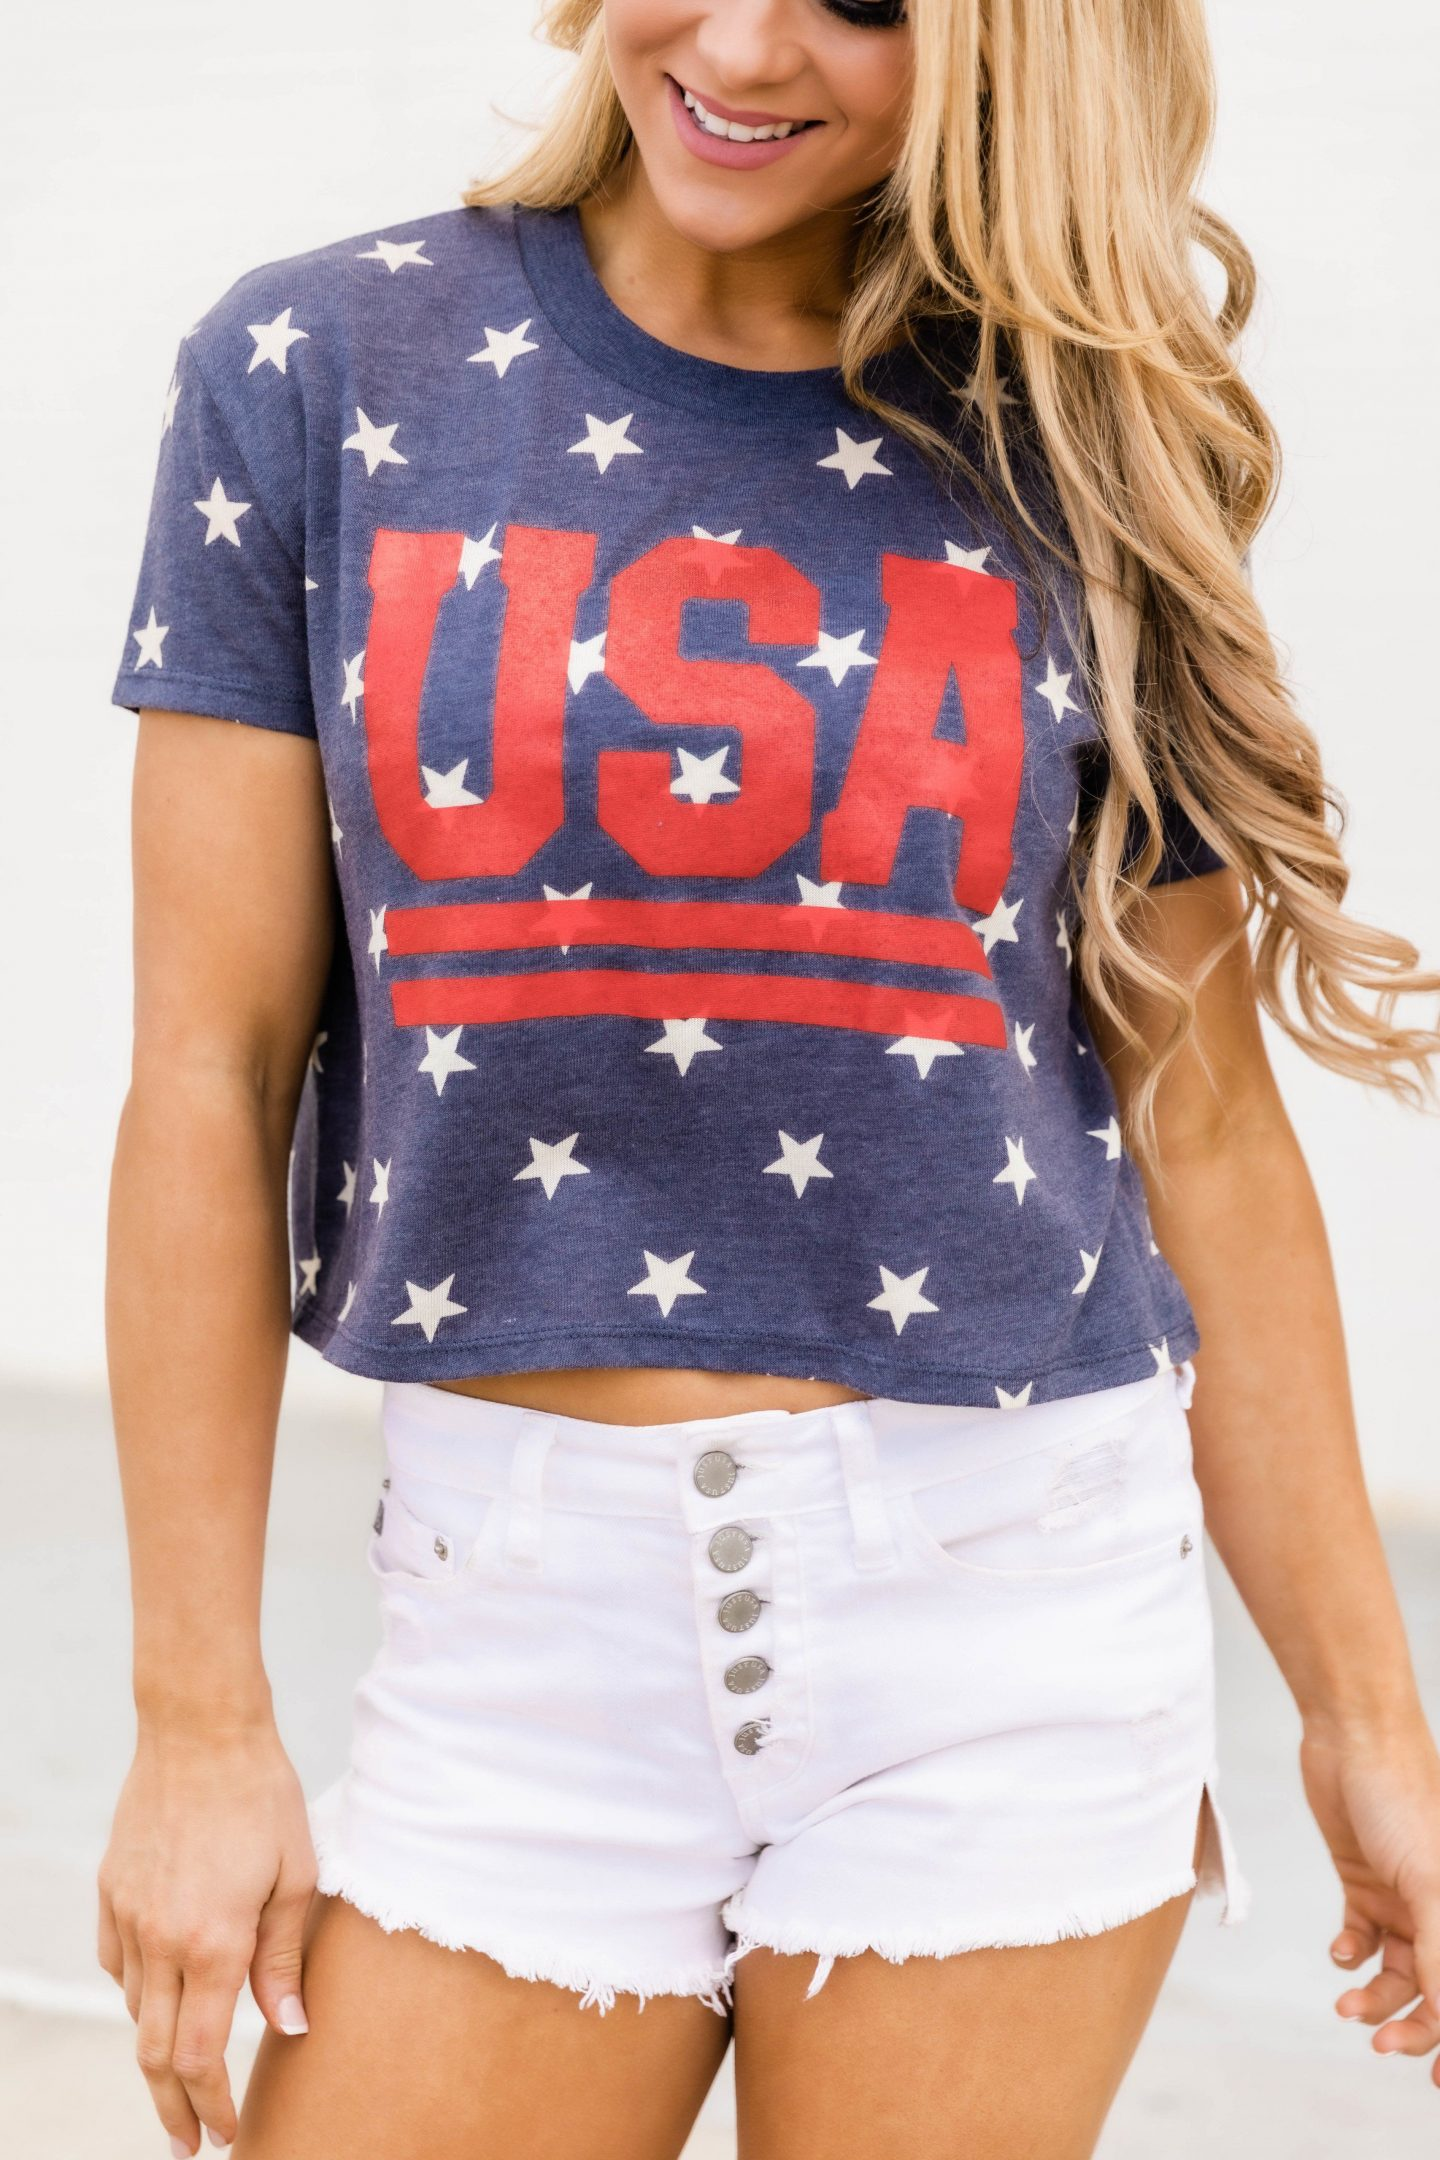 USA t-shirt - cute 4th of July outfit